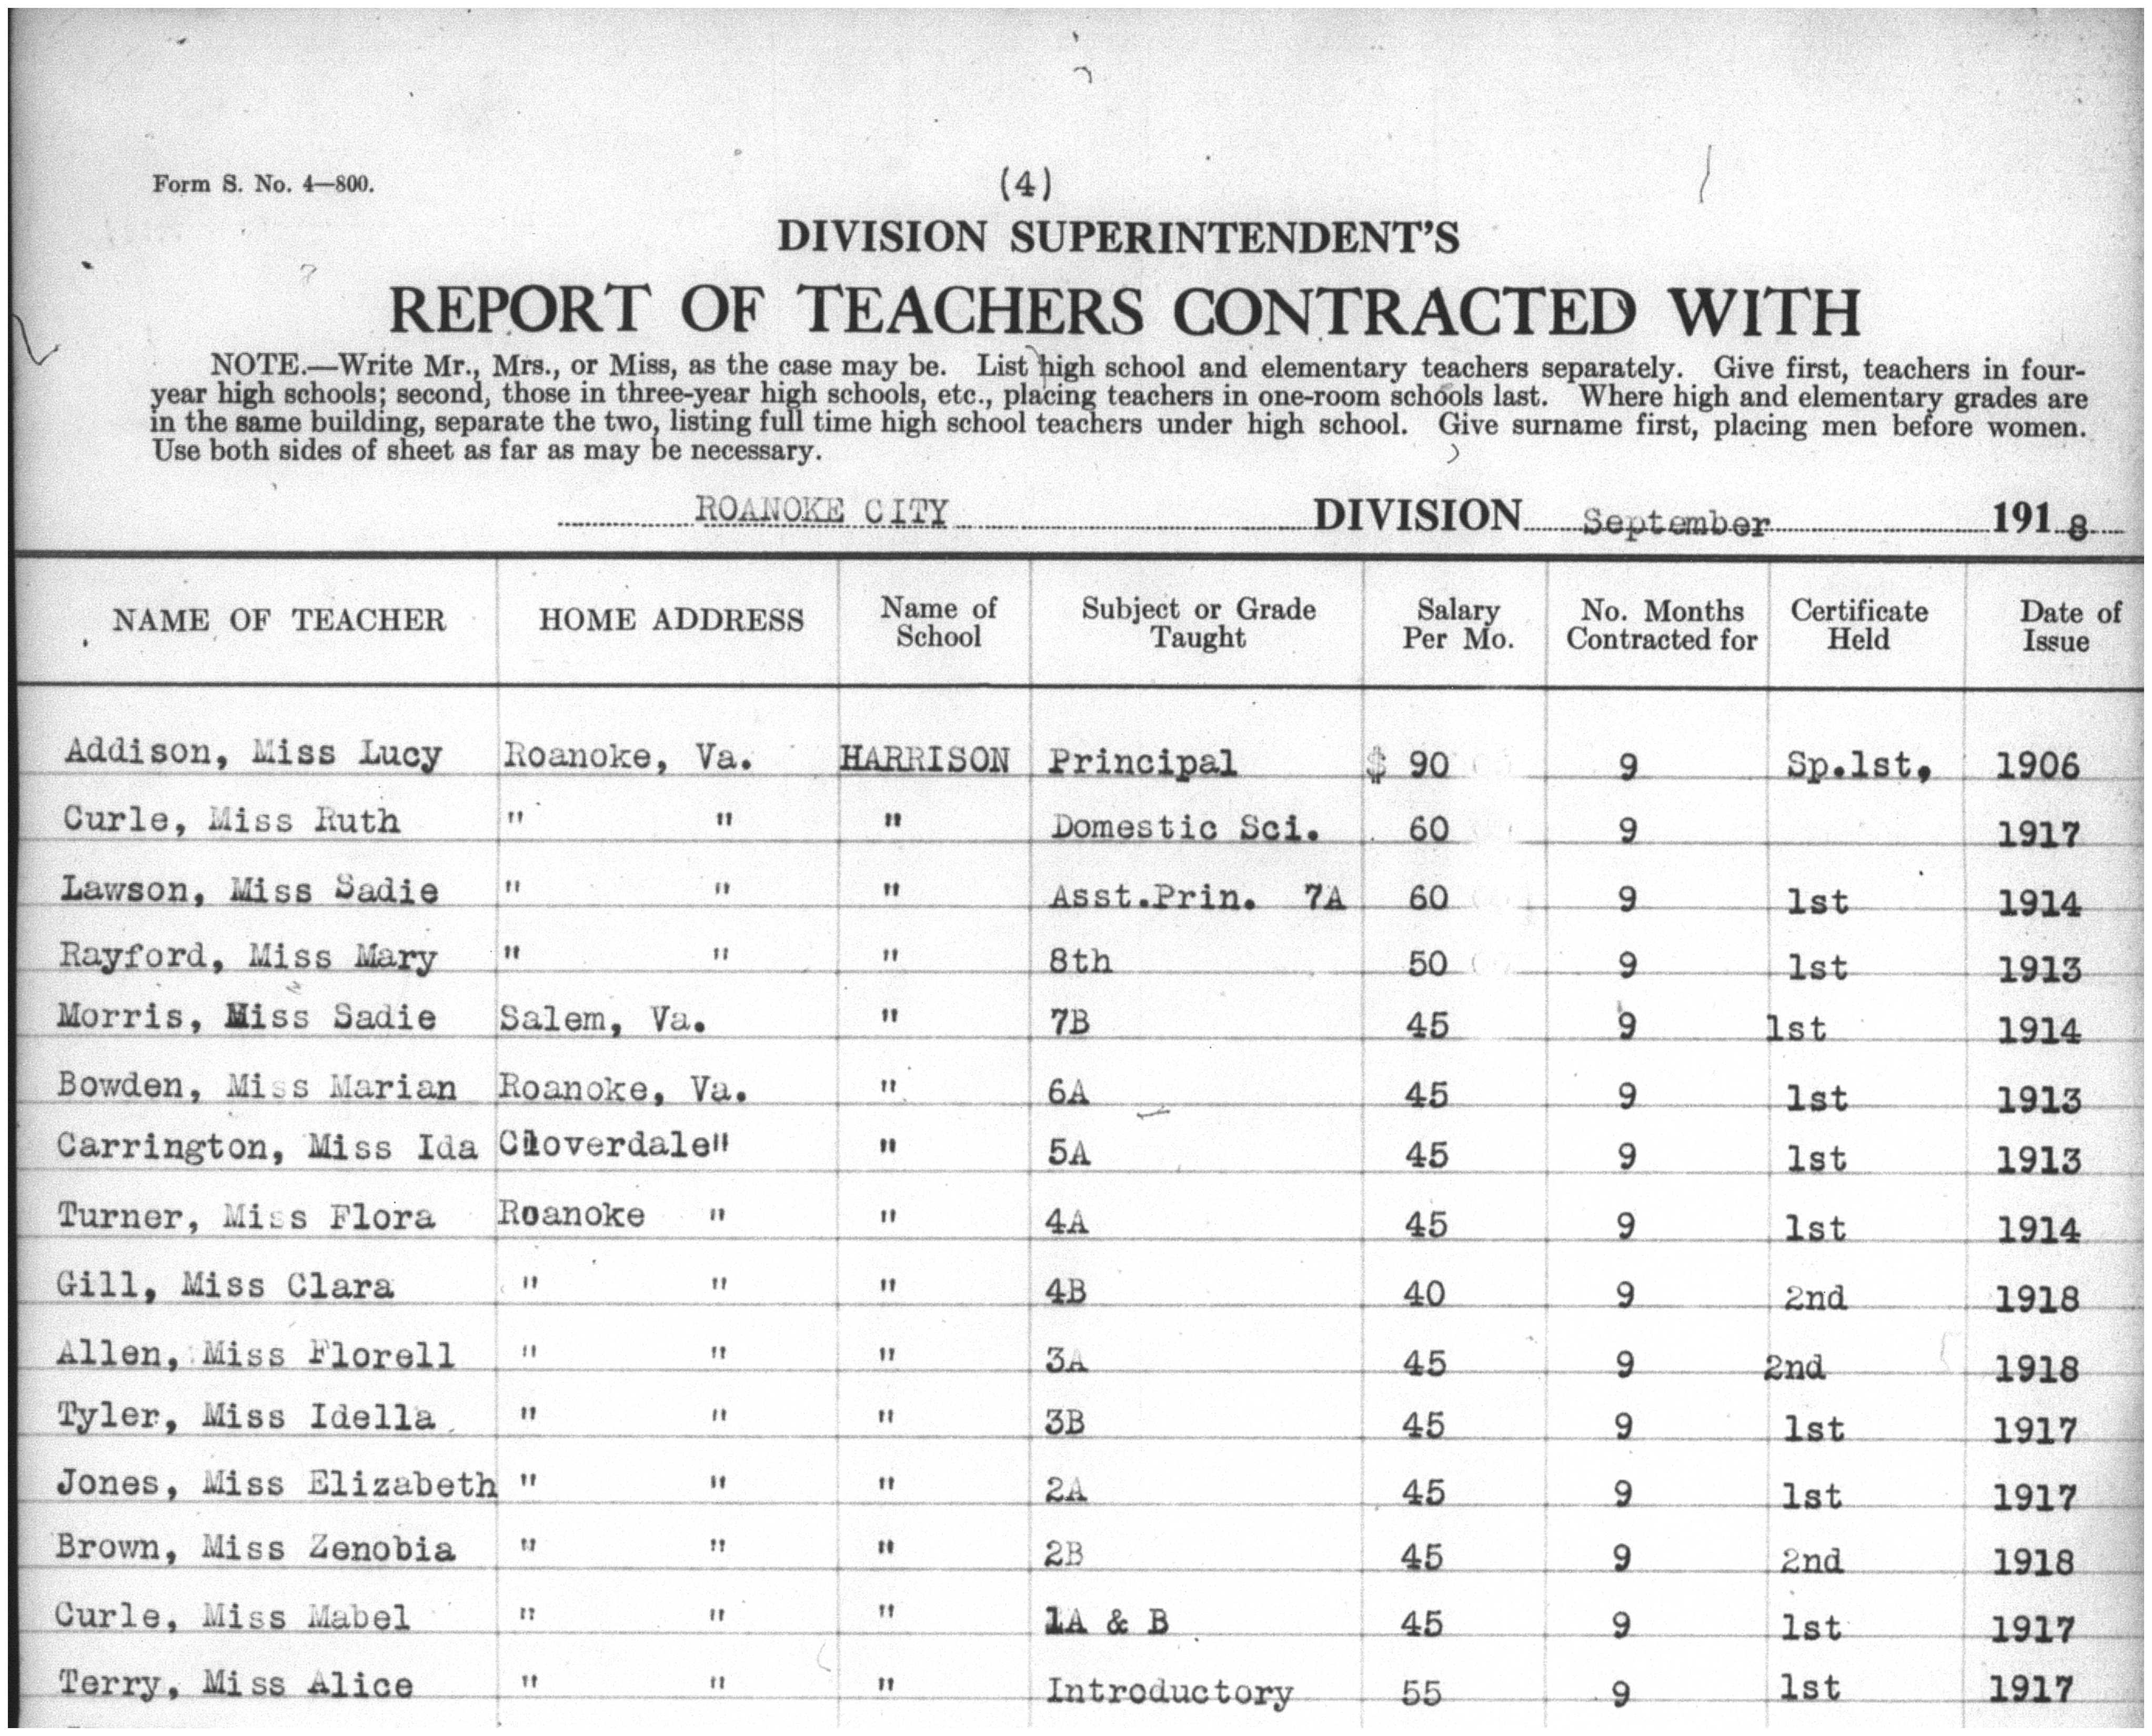 Lucy Addison listed as principal of Harrison School in 1918-1919, Lists of Teachers, Superintendent of Public Instruction,Virginia Department of Education Records, Accession 25000, image courtesy of the Library of Virginia.